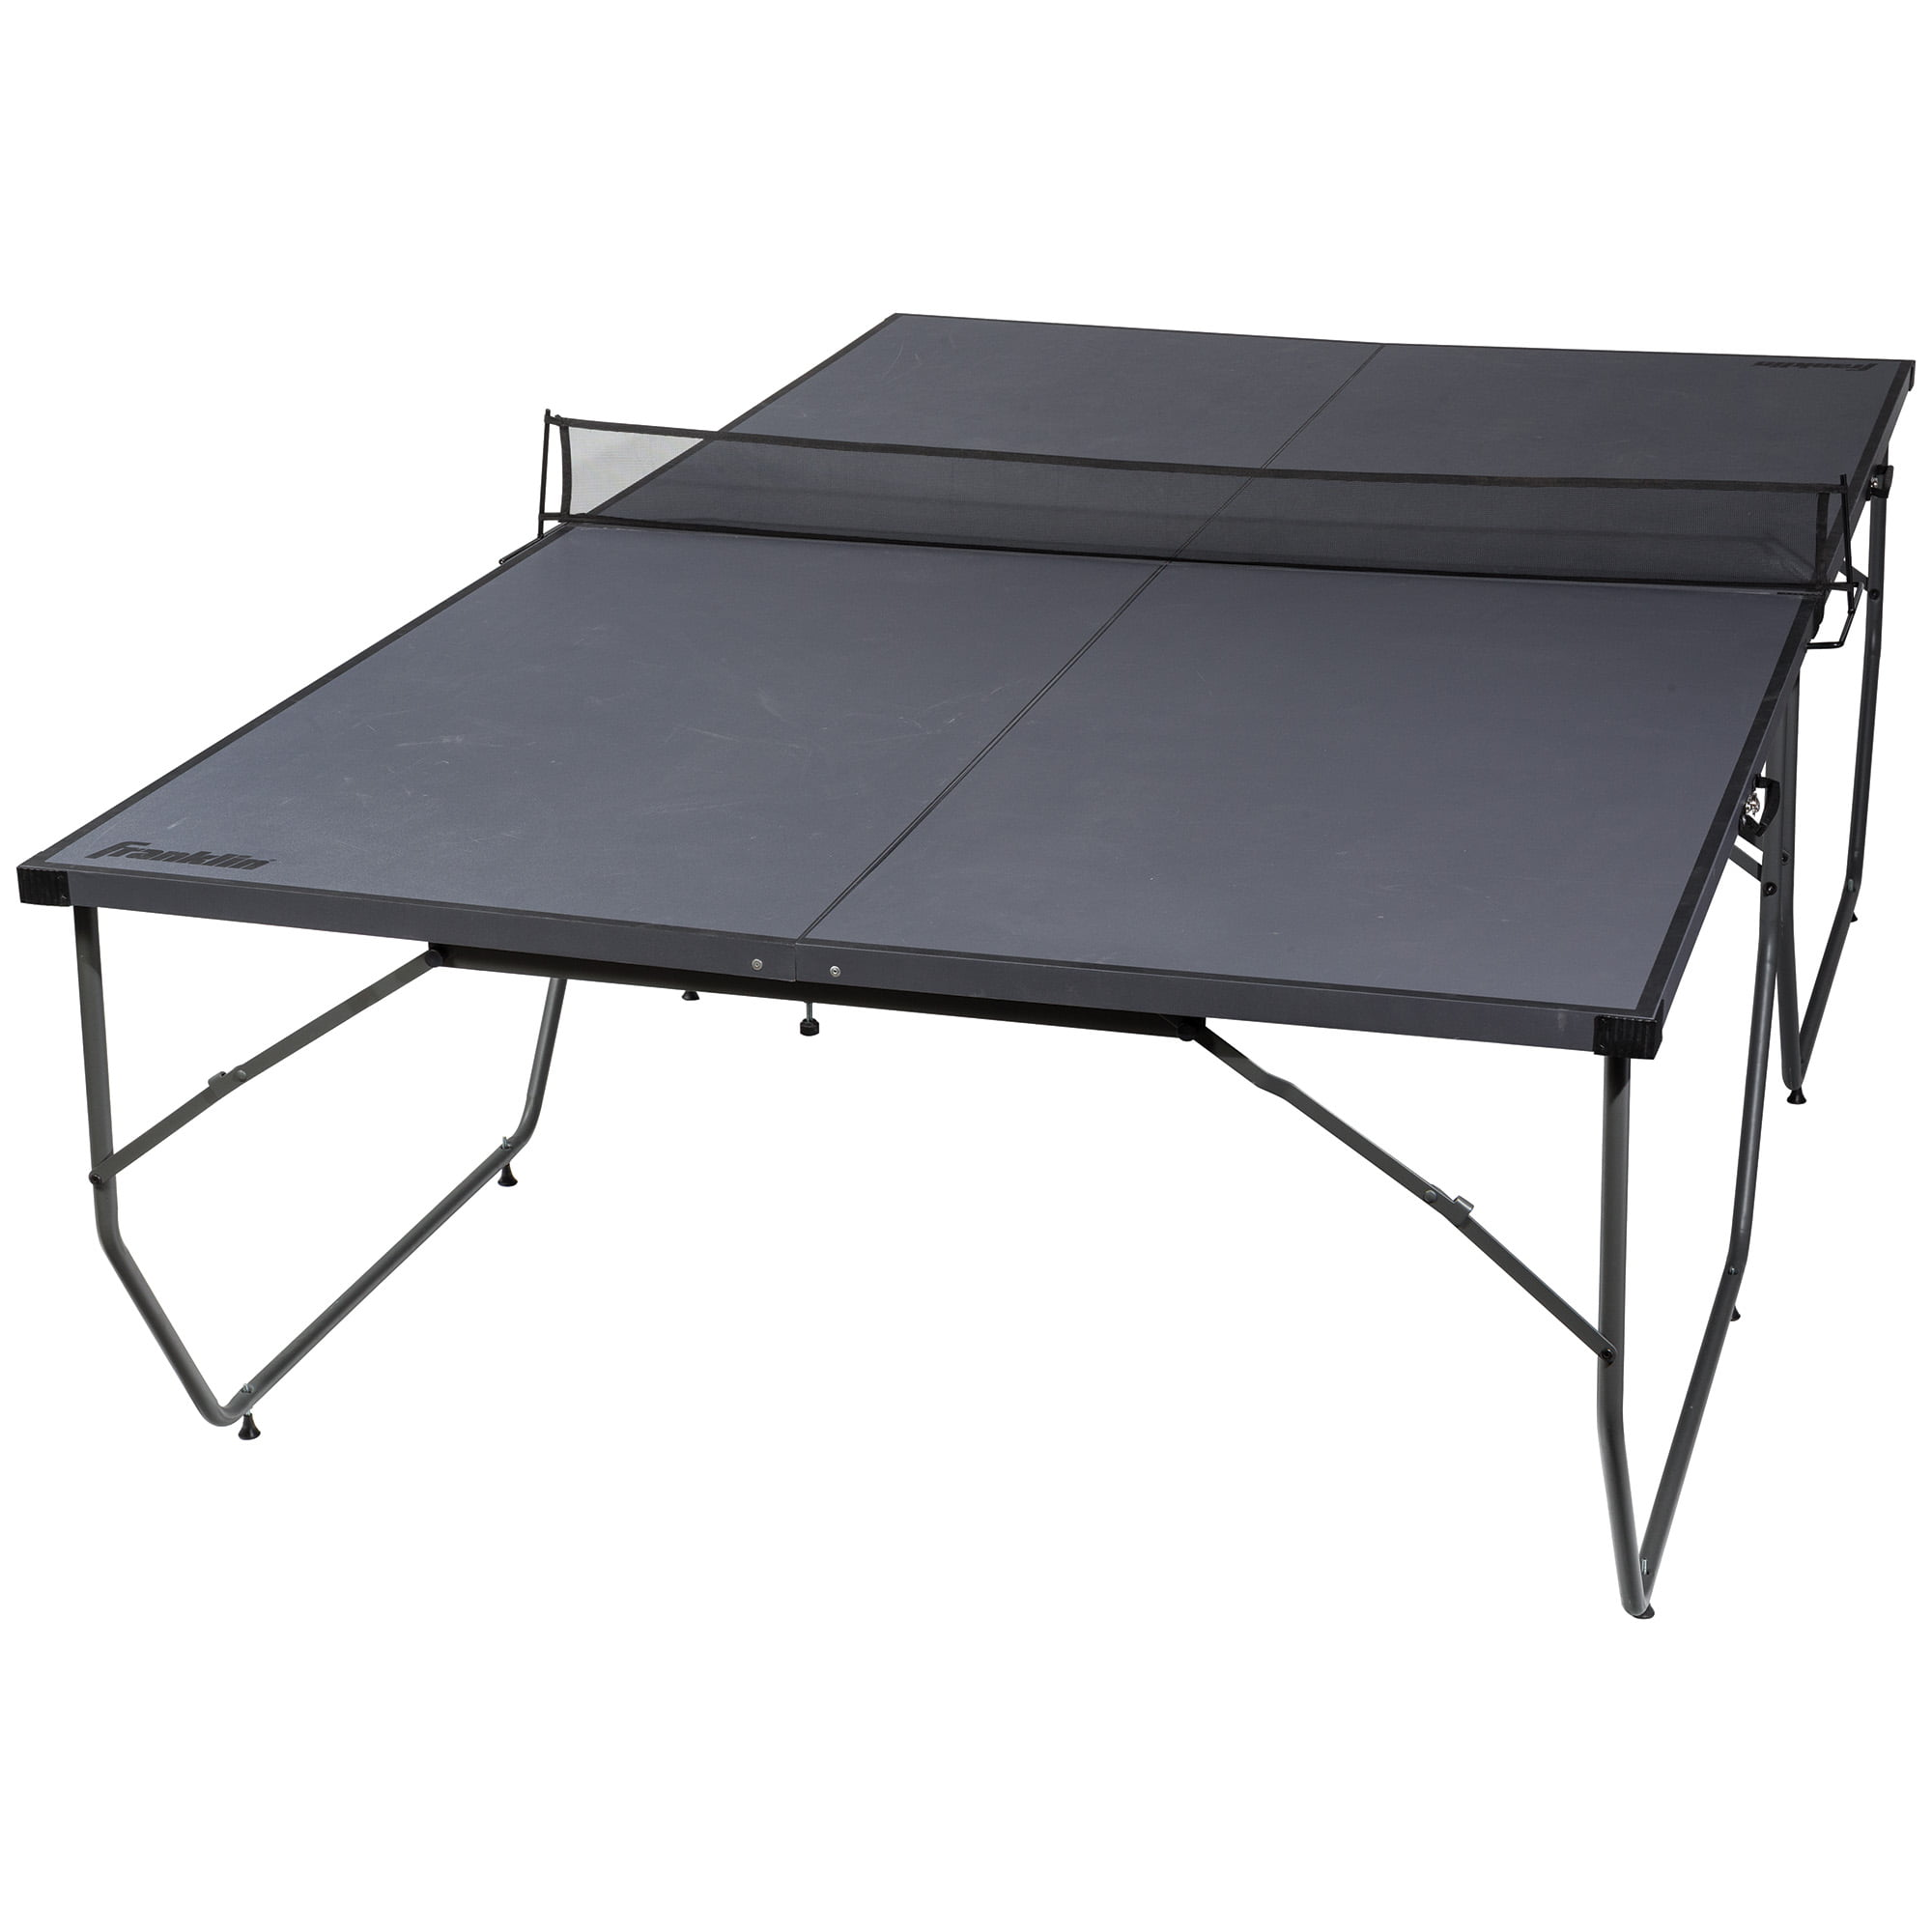 Franklin Sports Easy Assembly Ping Pong Table by Franklin Sports